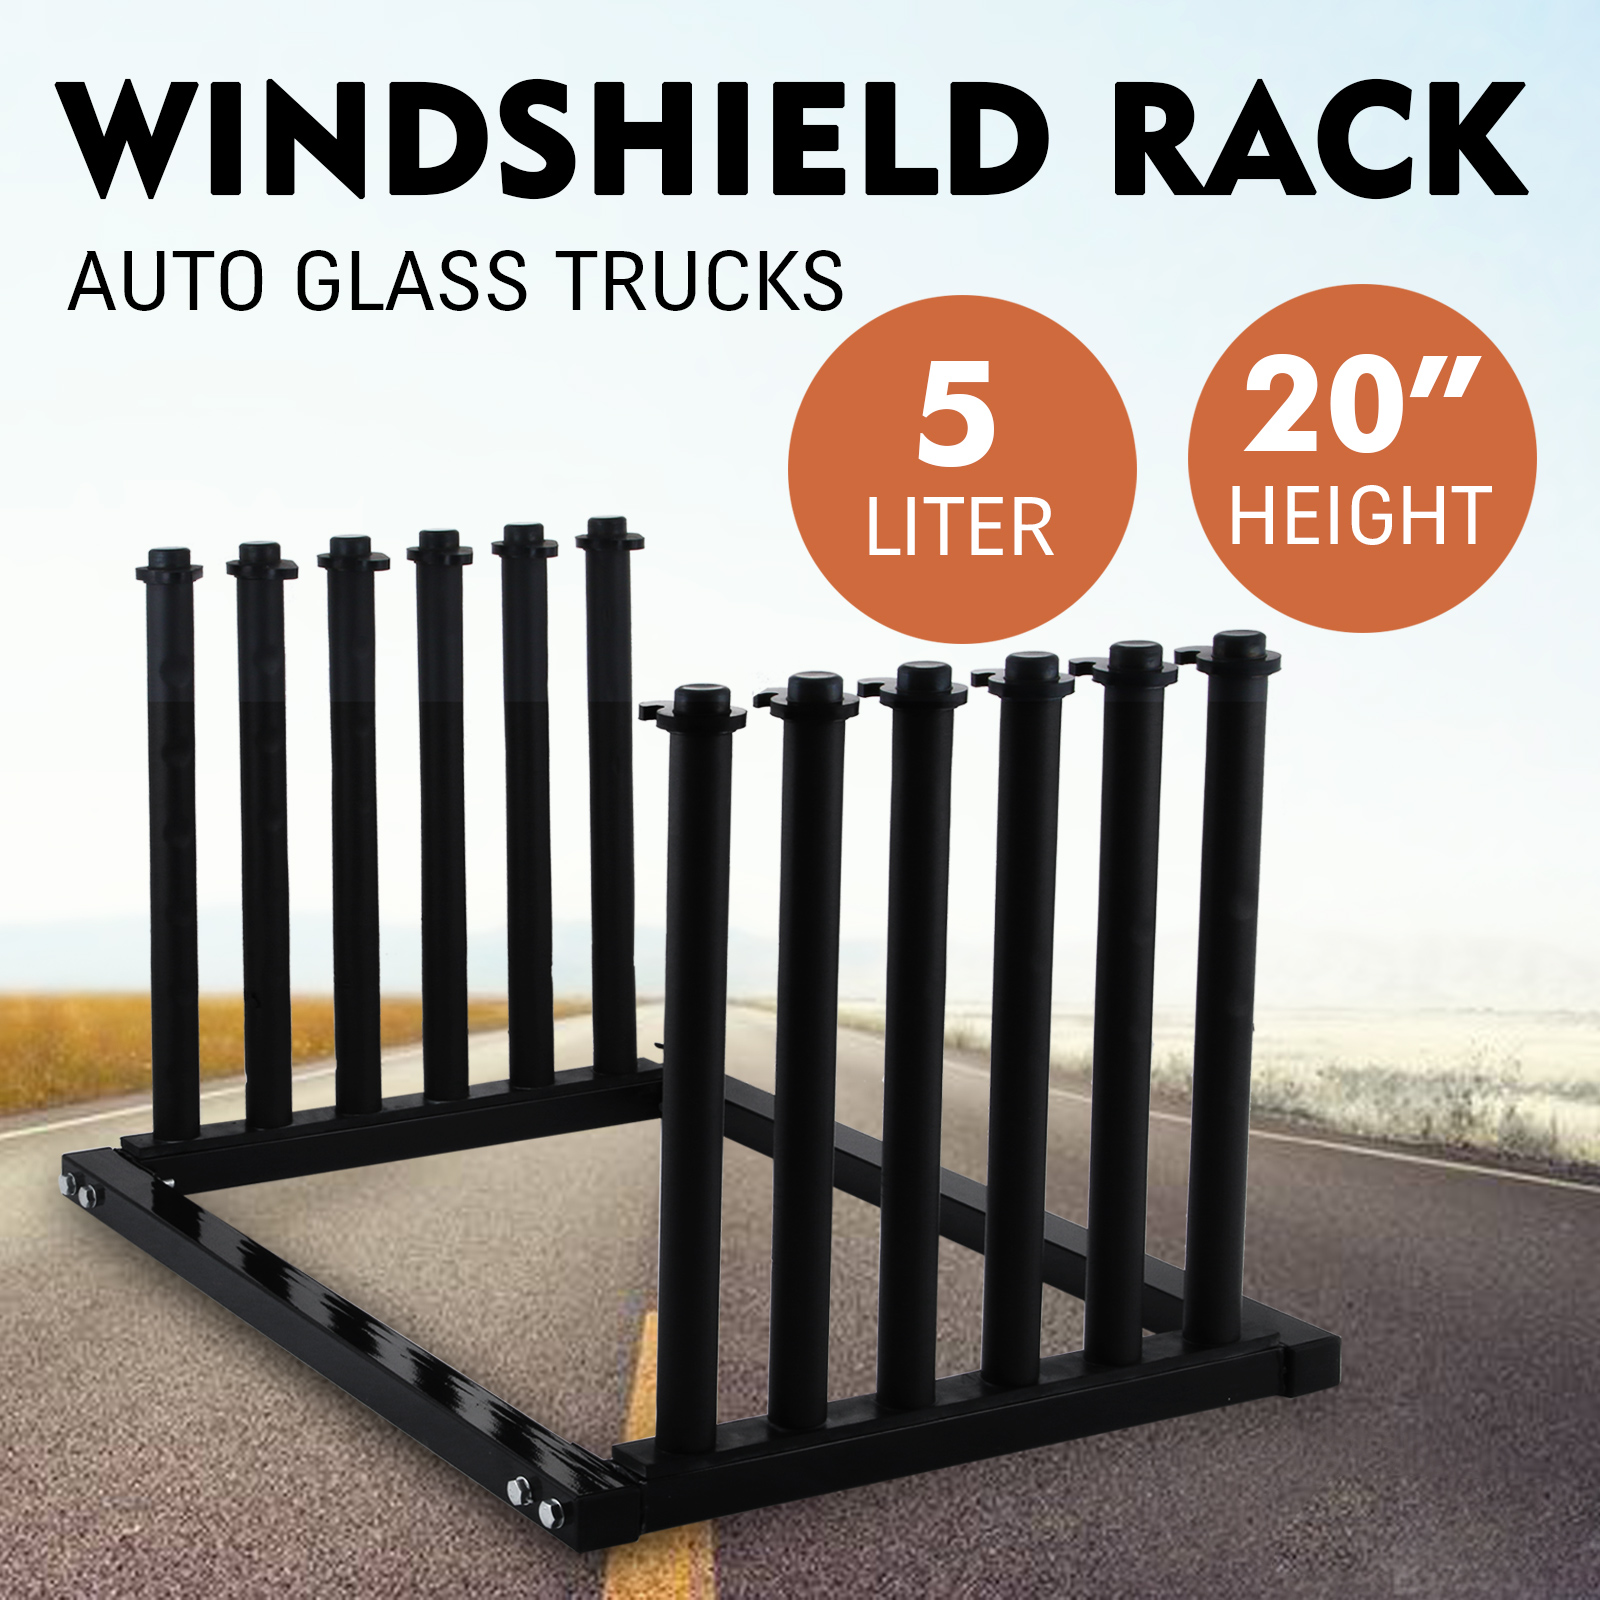 5-Lite-Windshield-Glass-Rack-Pickup-Transport-Black-New-In-Box